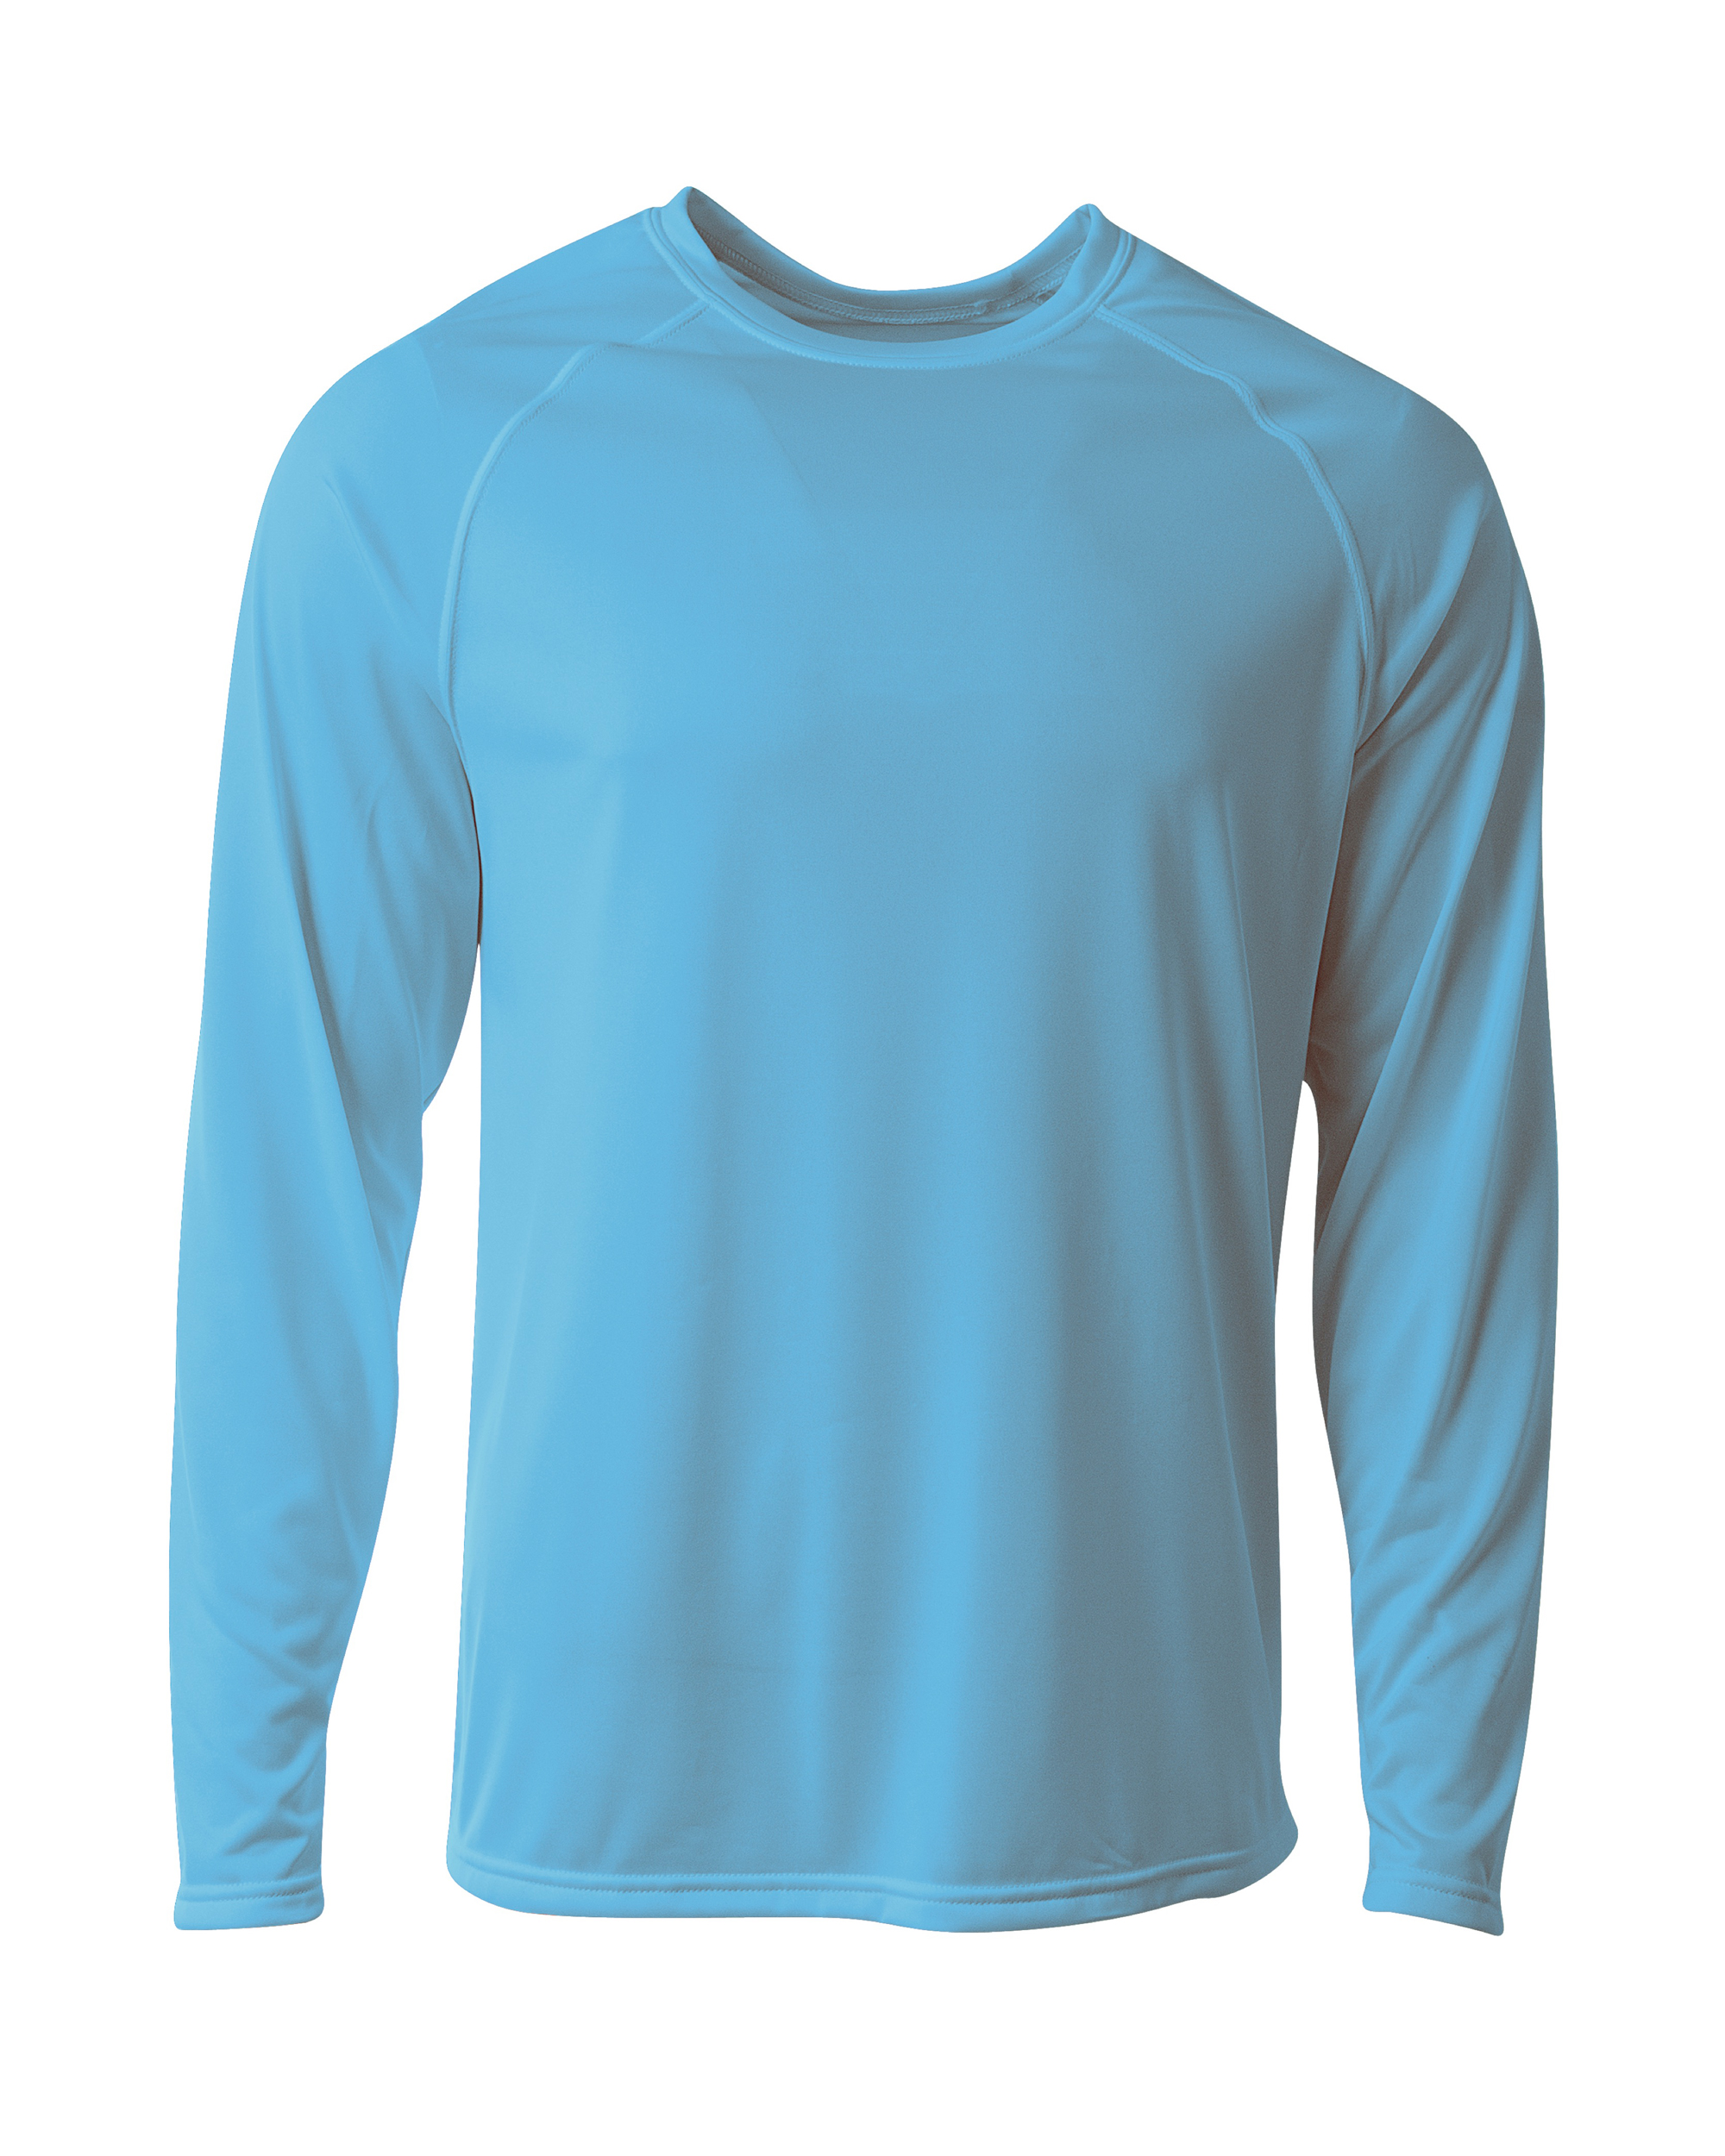 SureColor Long Sleeve Cationic Tee